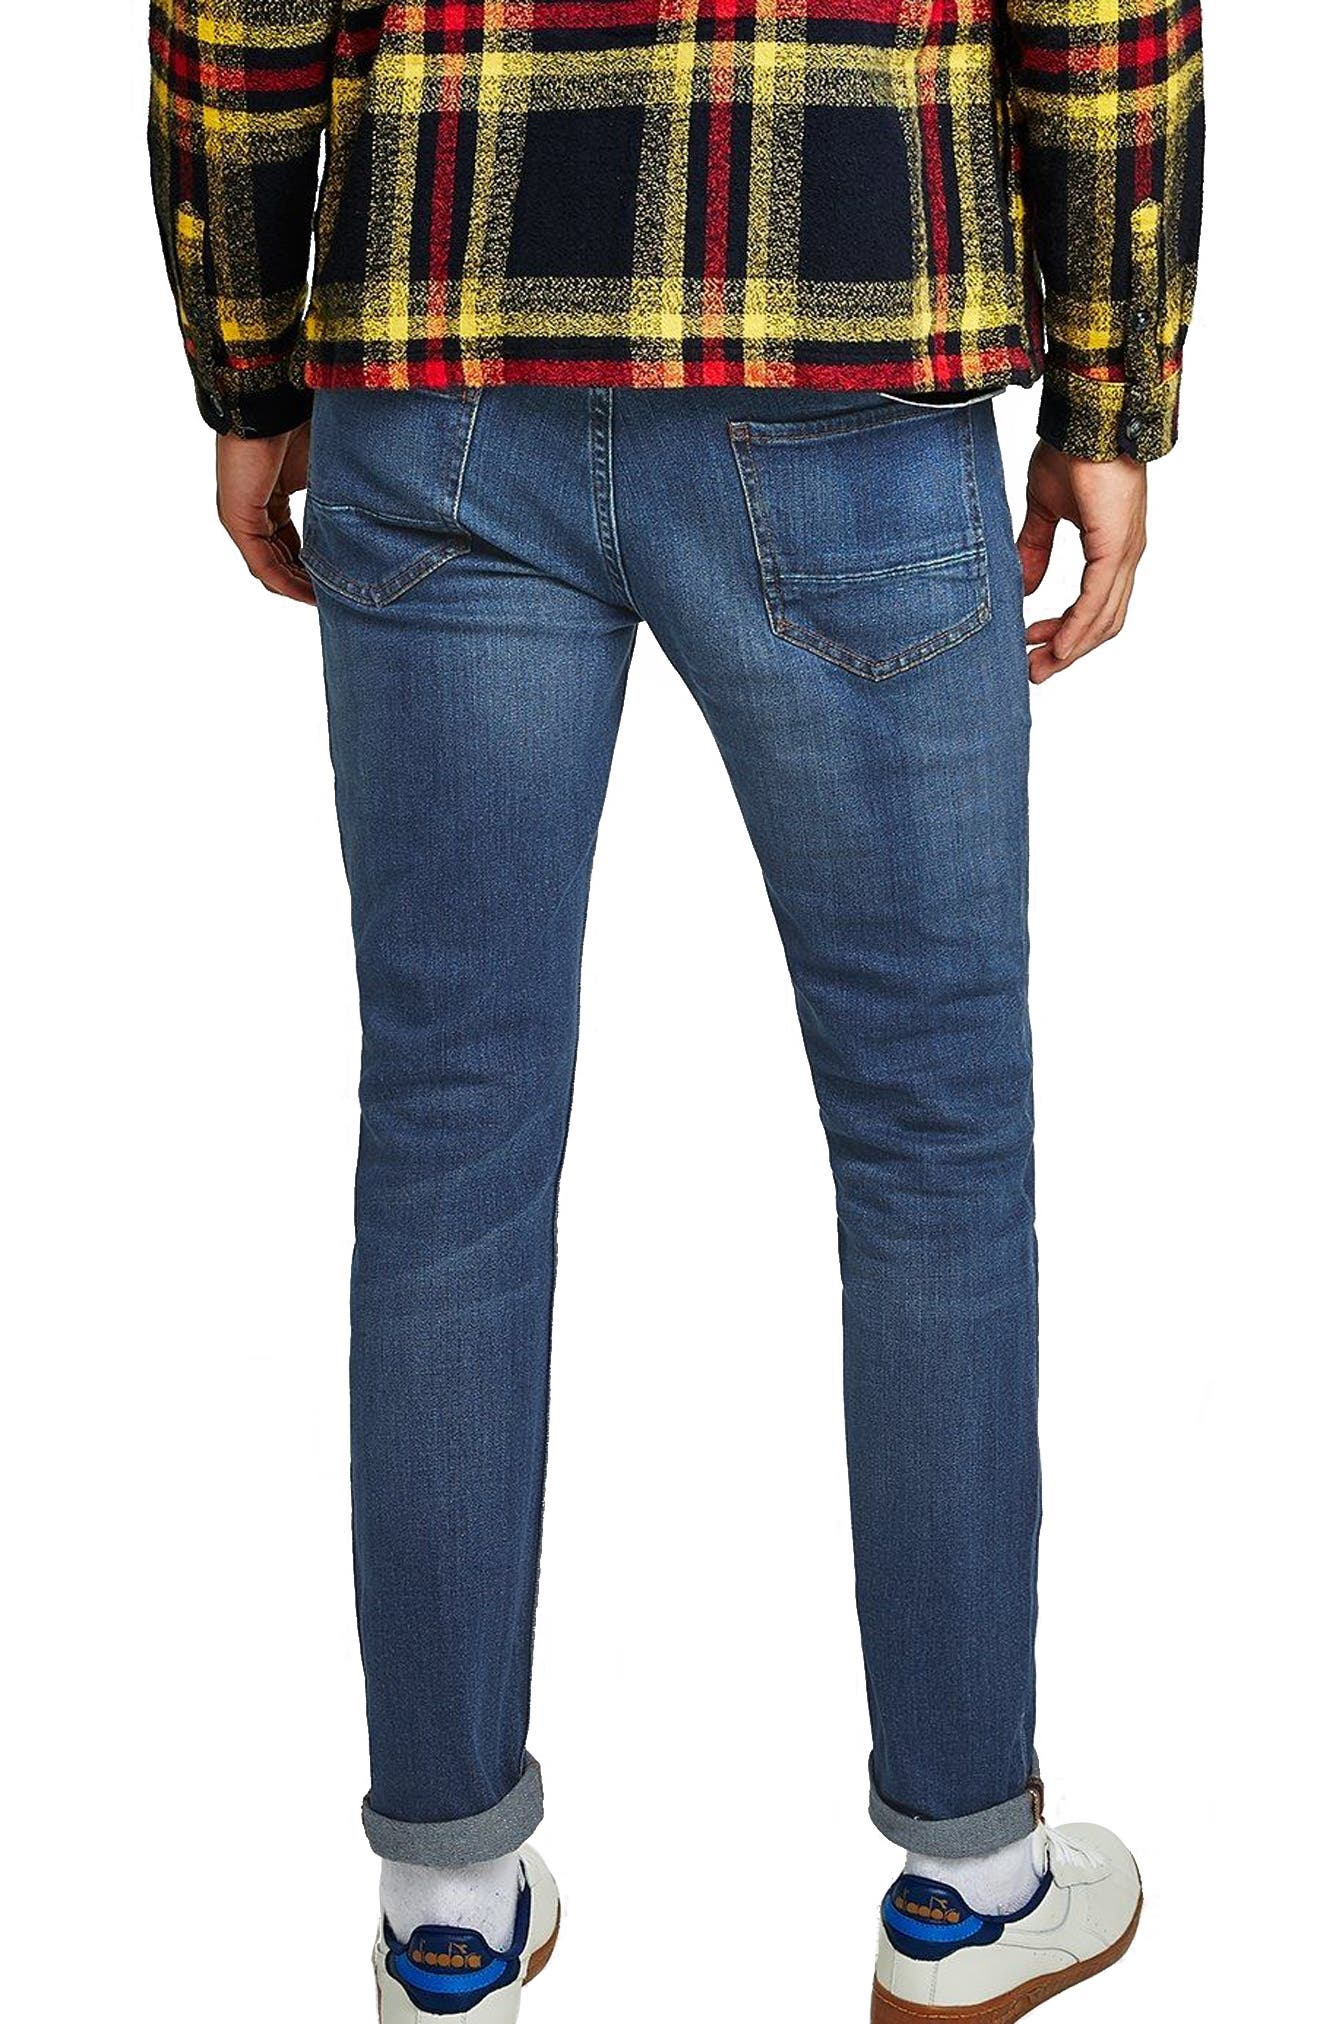 Stretch Skinny Fit Jeans,                             Alternate thumbnail 2, color,                             BLUE